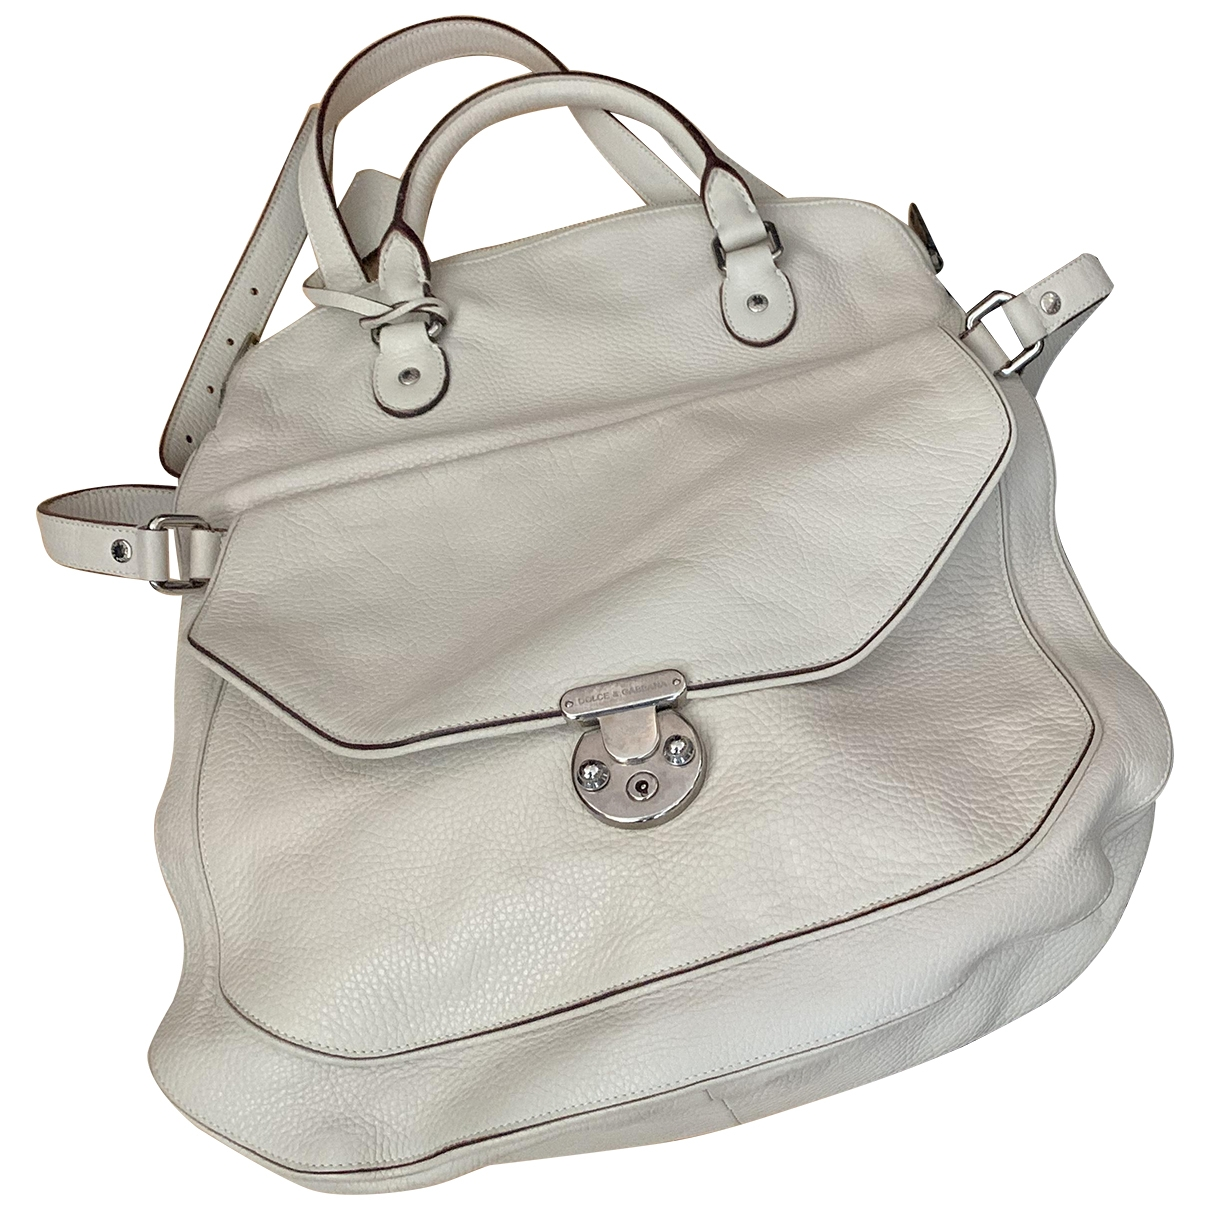 Dolce & Gabbana \N White Leather handbag for Women \N